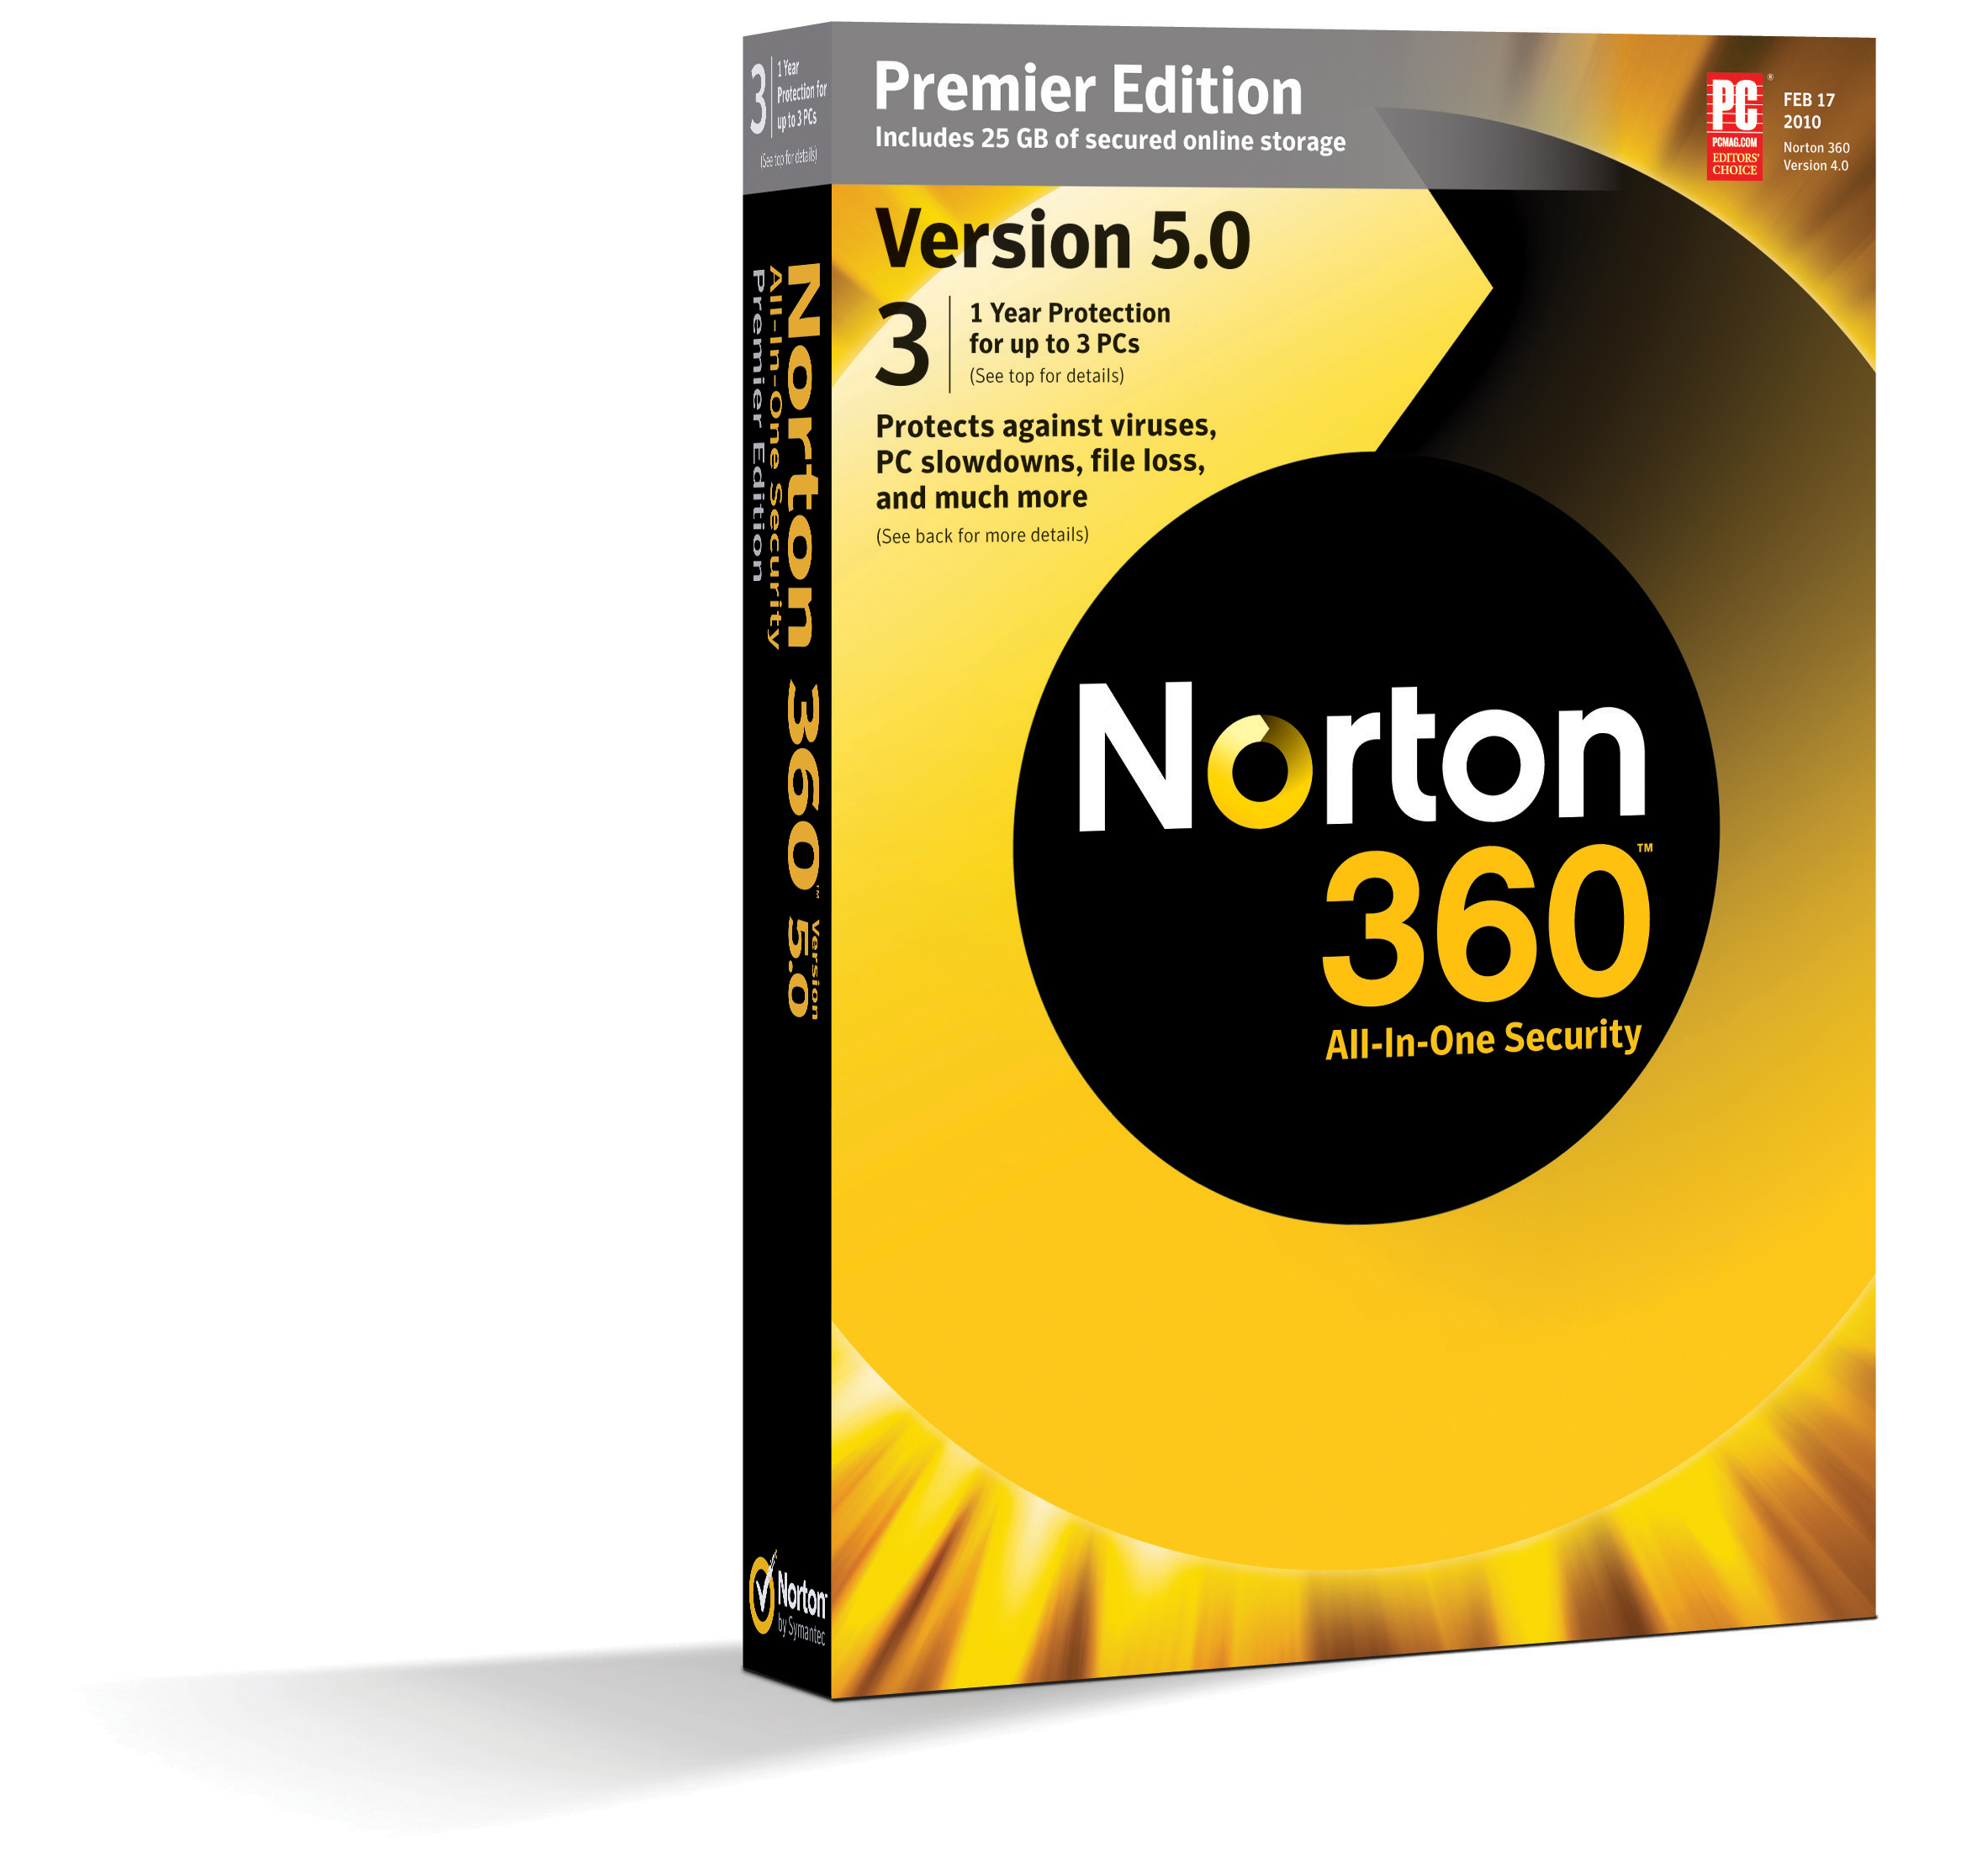 Norton 360 v3.5.0.15 premier edition 2017